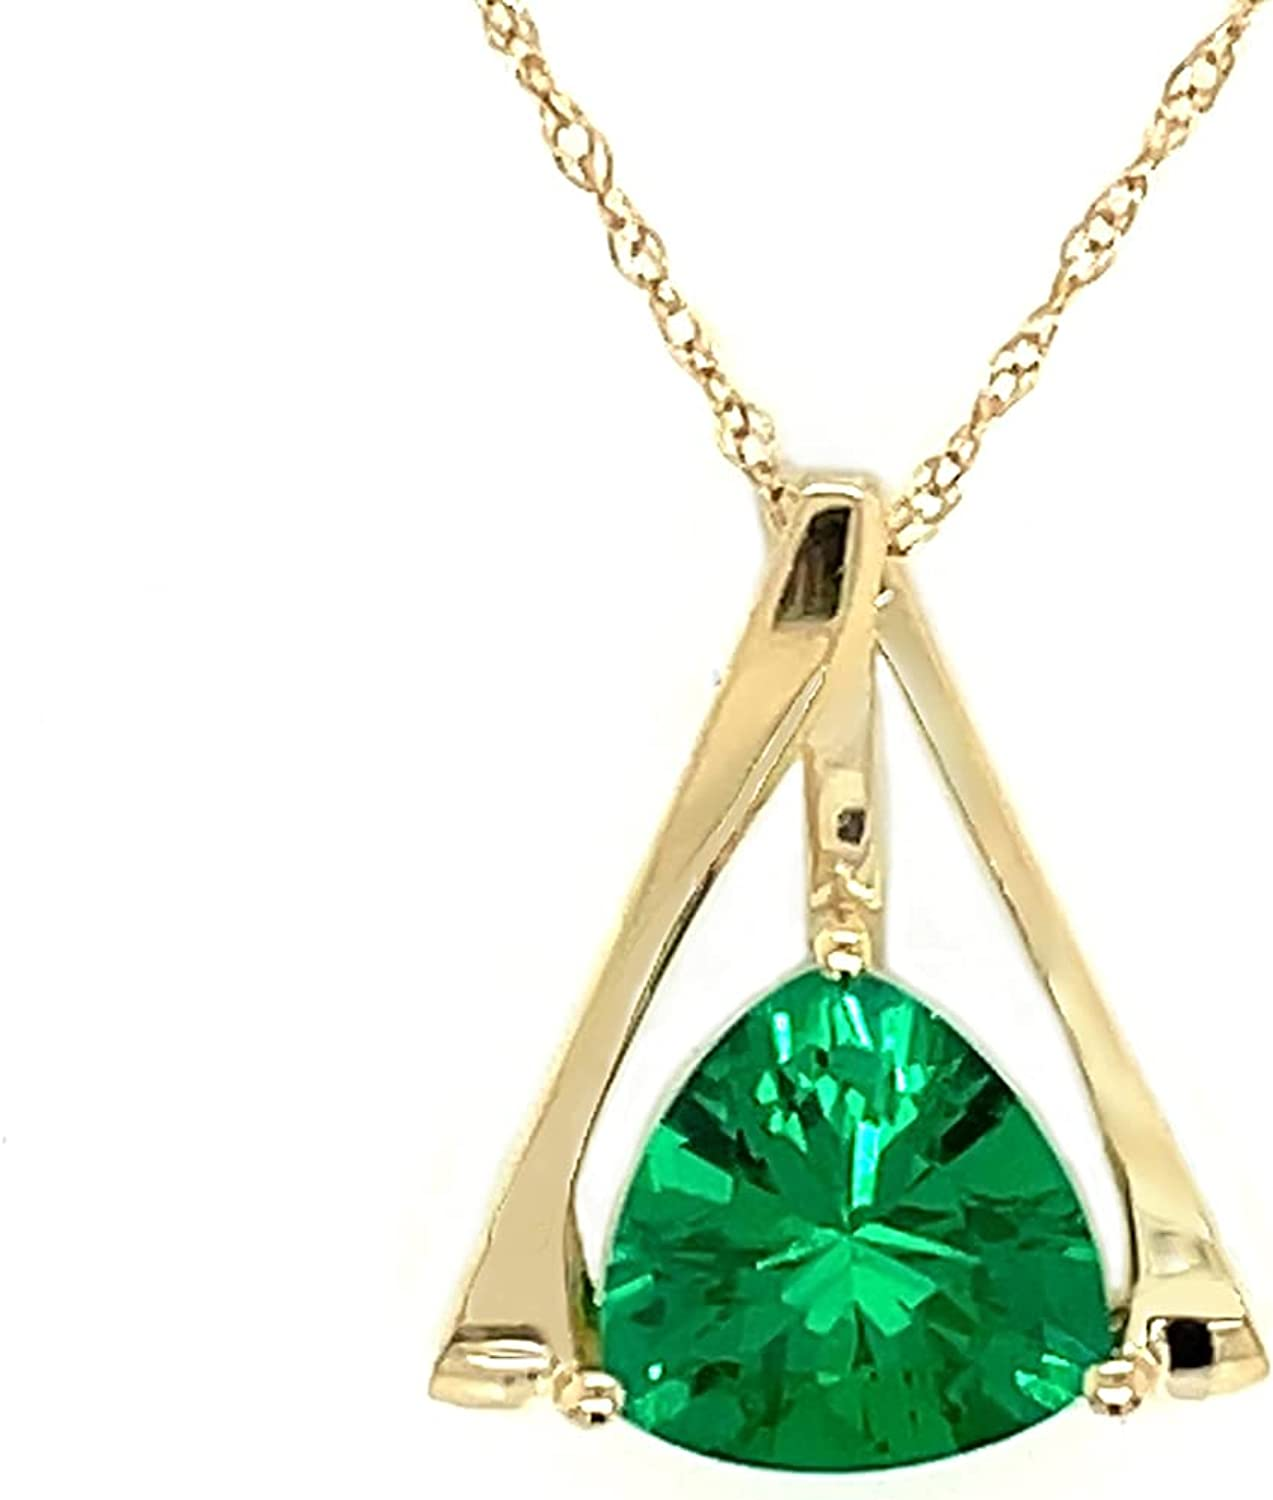 Royal Jewelz 8 MM Trillion-shape Simulated Emerald Pendant Necklace in 10k Yellow Gold. Comes with 10k Gold Chain.